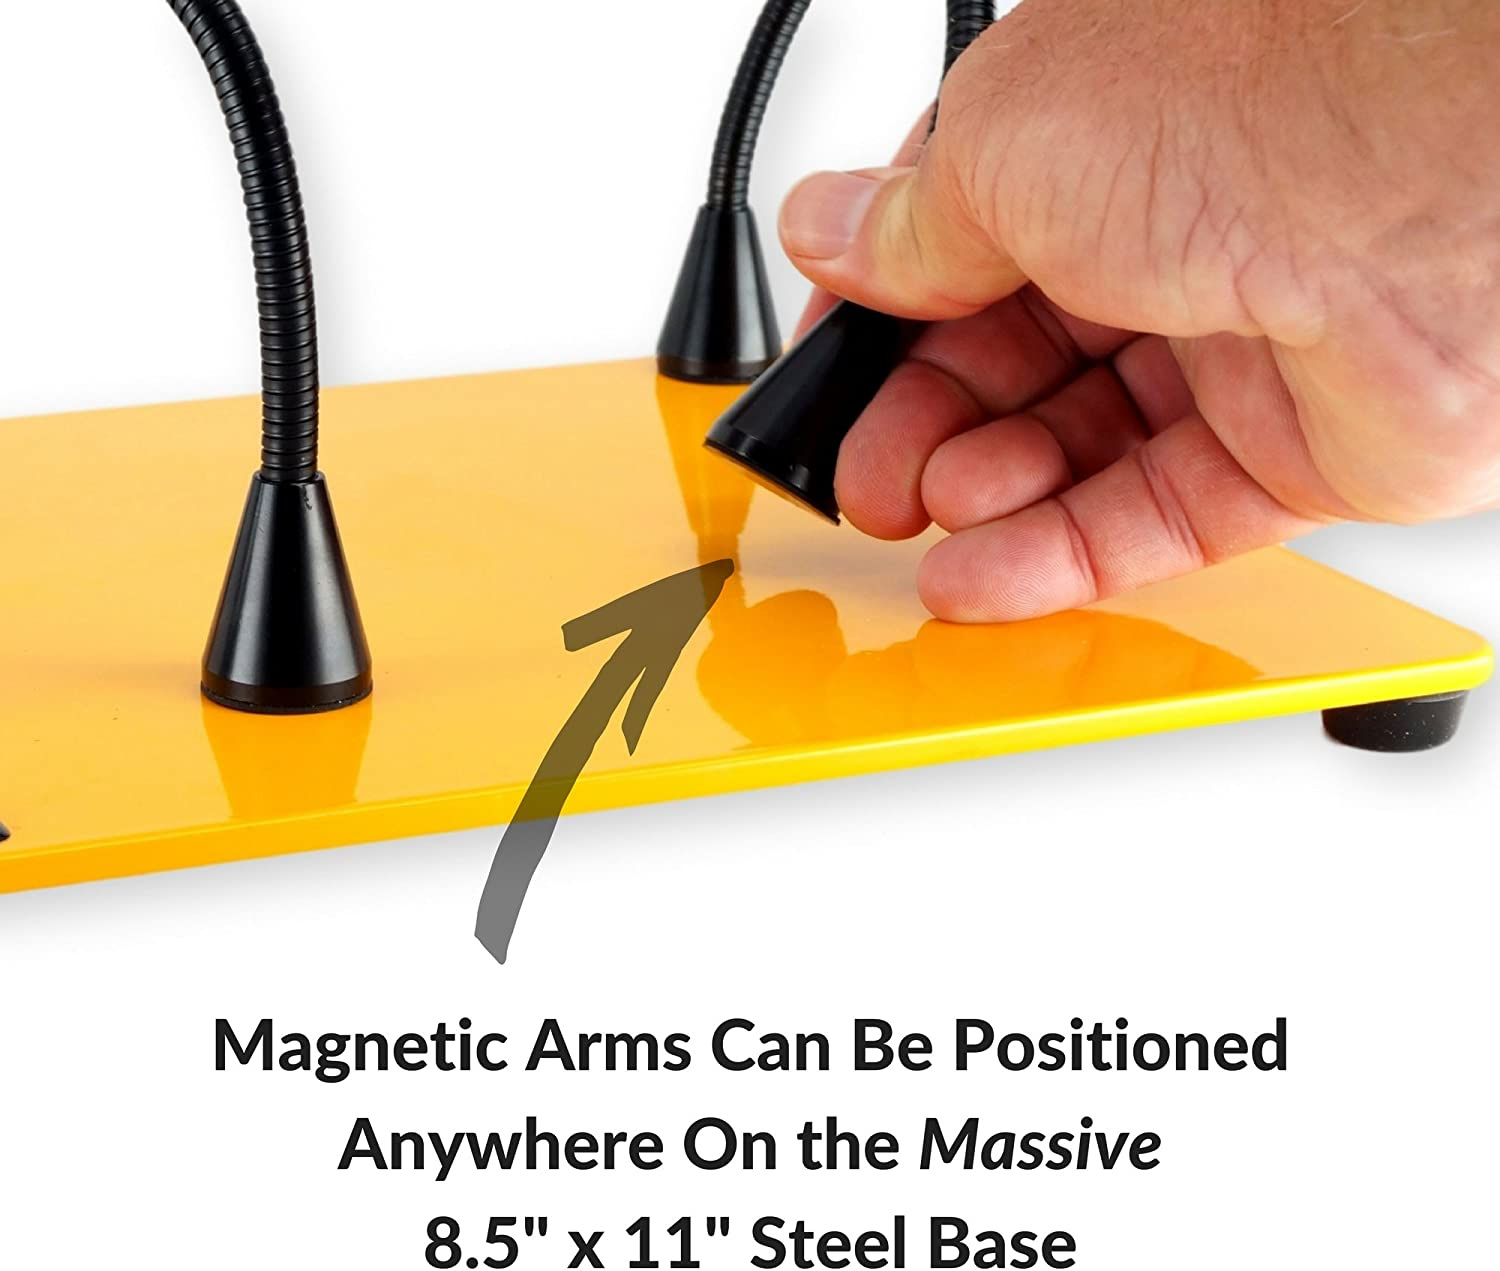 Magnetic Mount Arms Can be Positioned Anywhere QuadHands Deluxe WorkBench Helping Hands Third Hand System Ultimate Flexibility